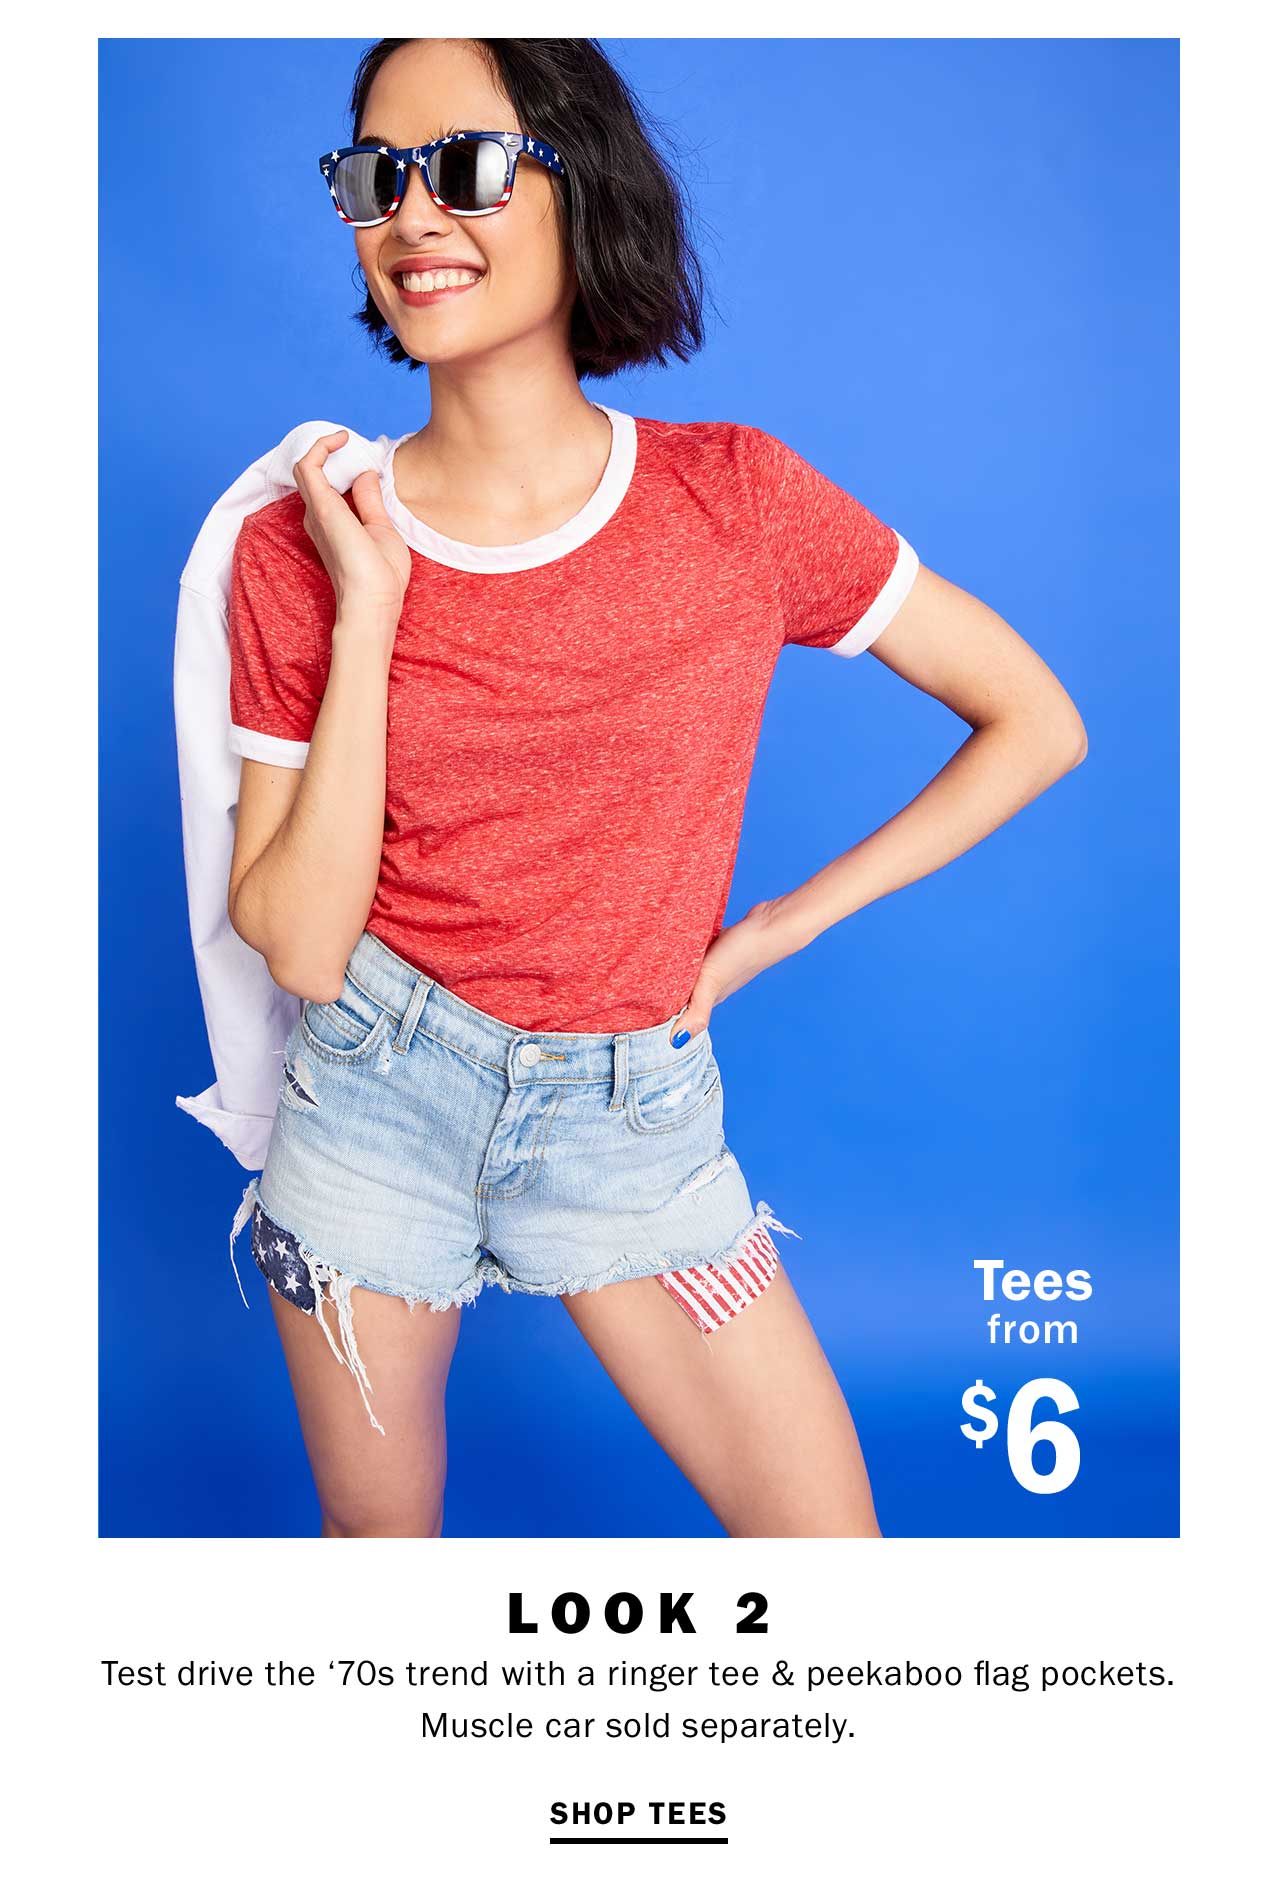 Tees from $6 | LOOK 2 | SHOP TEES